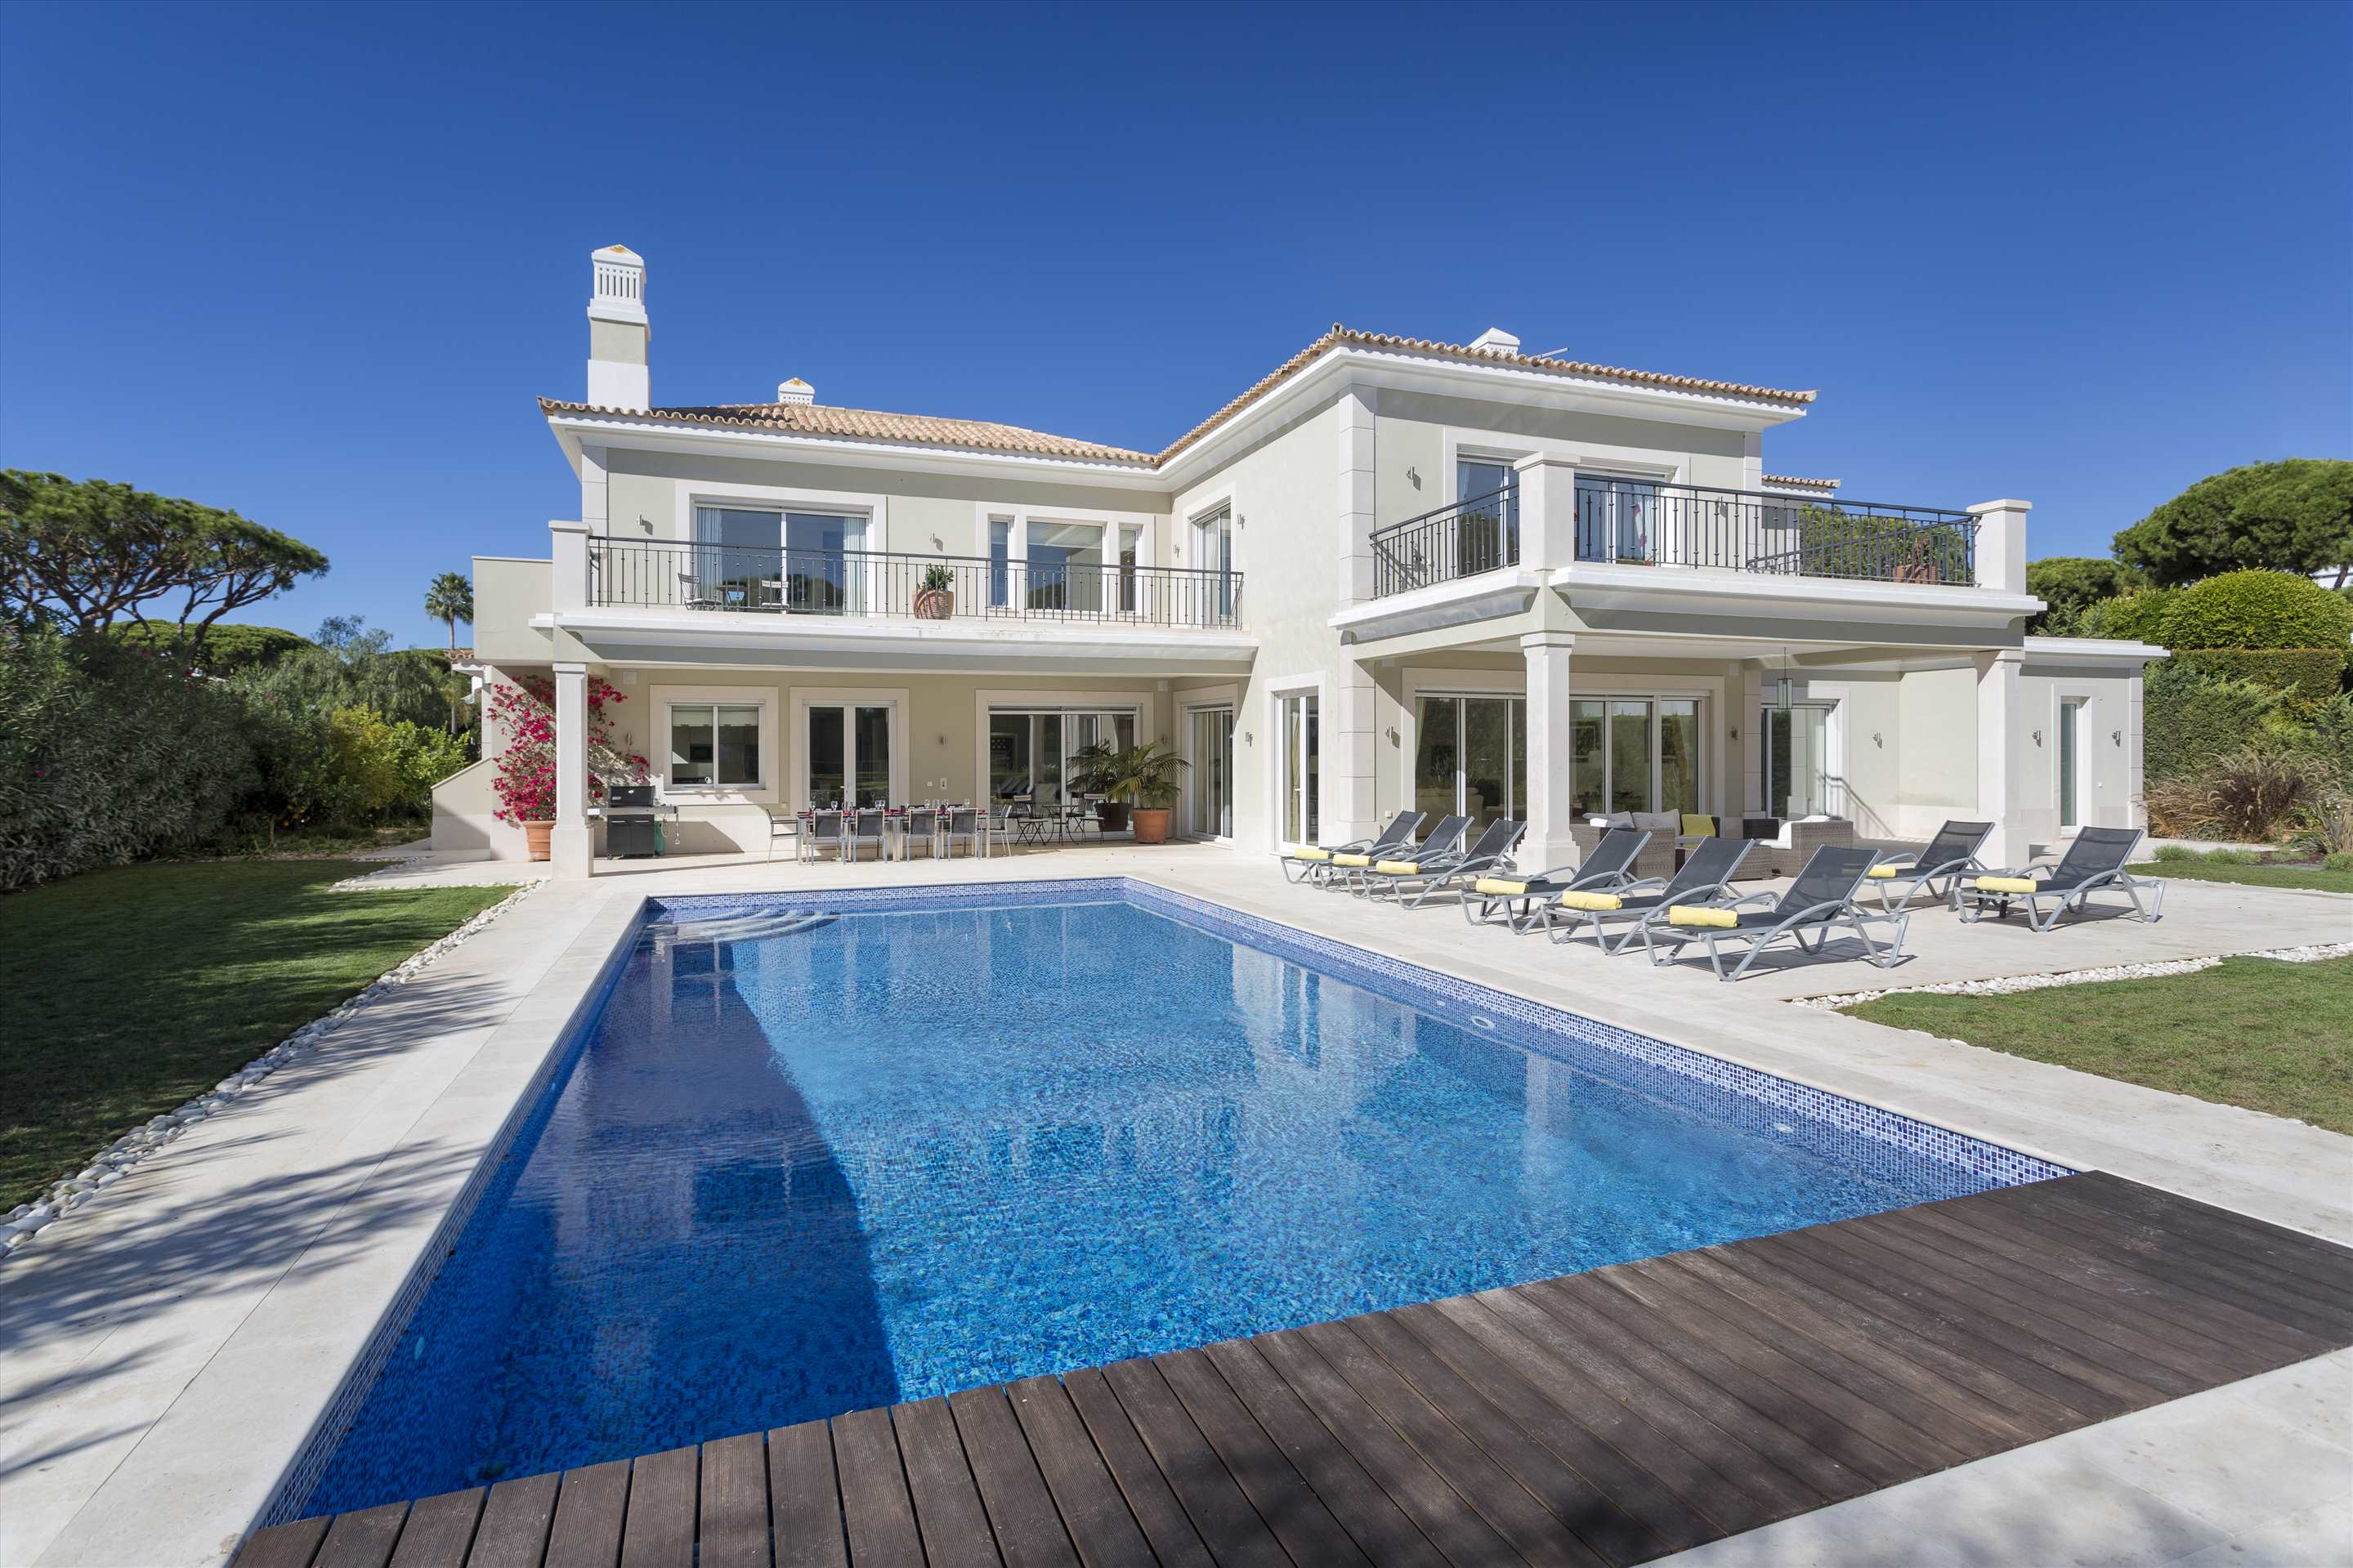 Villa Belissima, 5 bedroom villa in Vale do Lobo, Algarve Photo #10